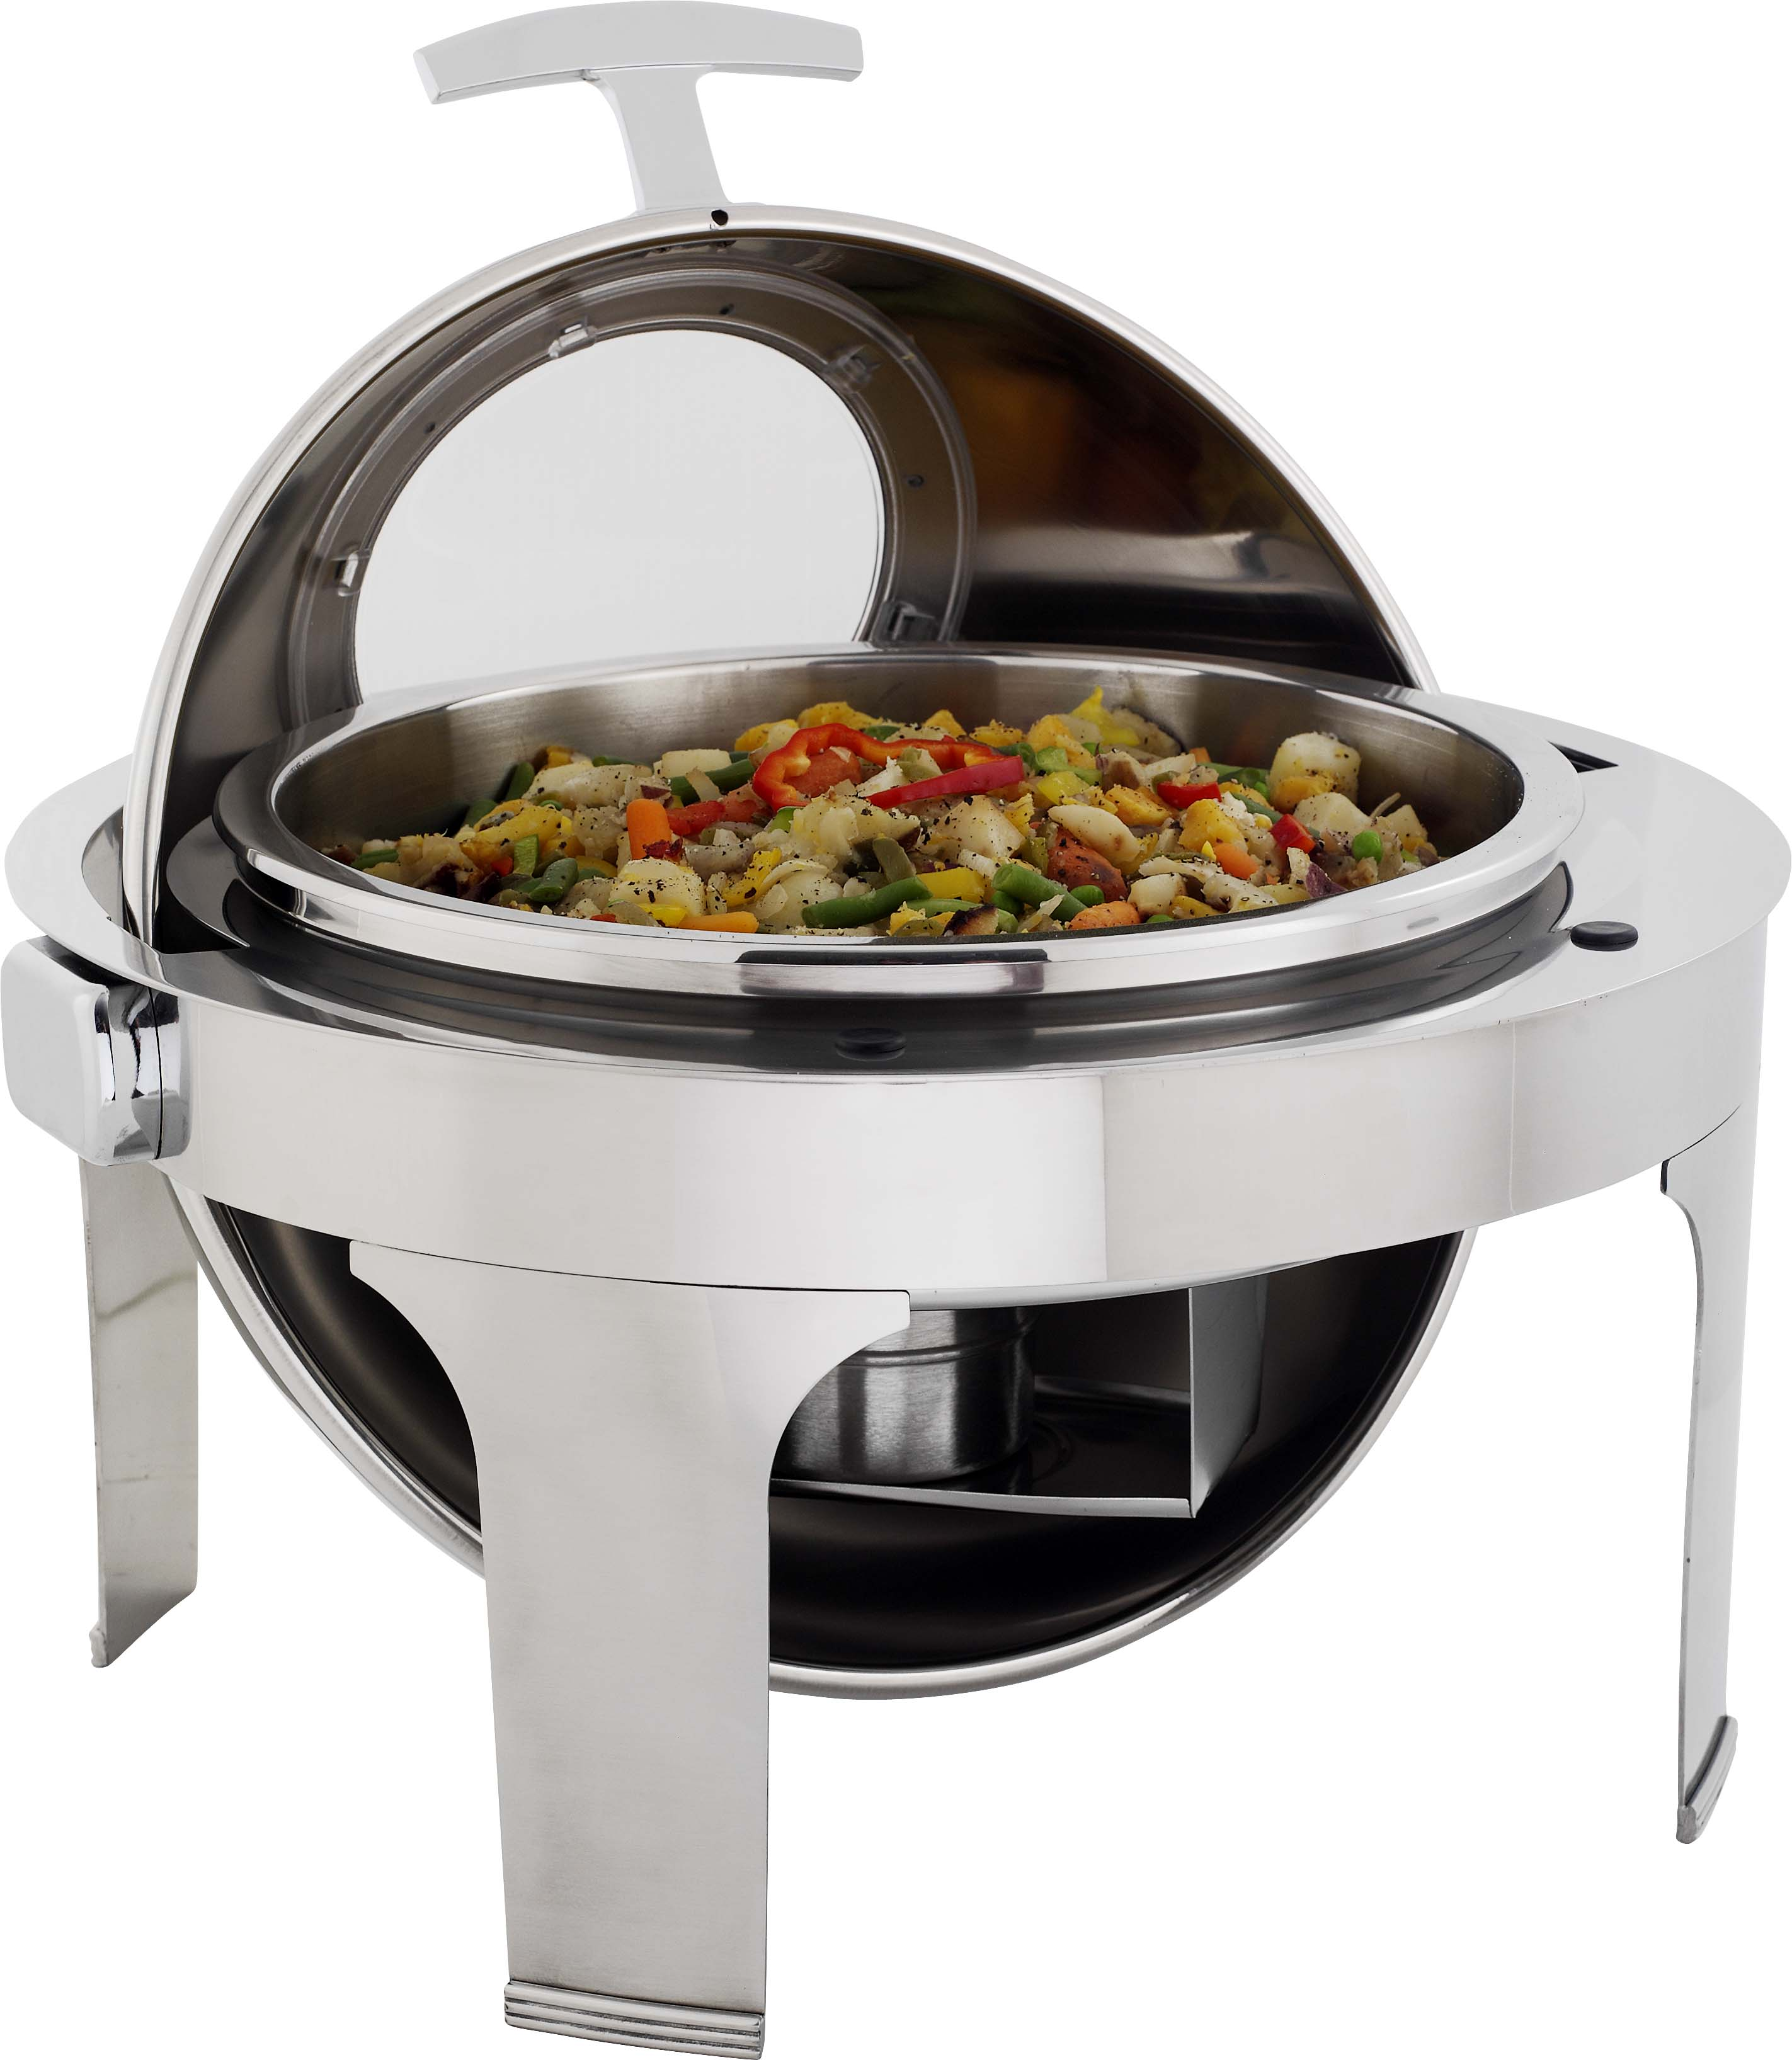 CHAFING DISH S/S - ROLL TOP ROUND WITH WINDOW 6.8Lt